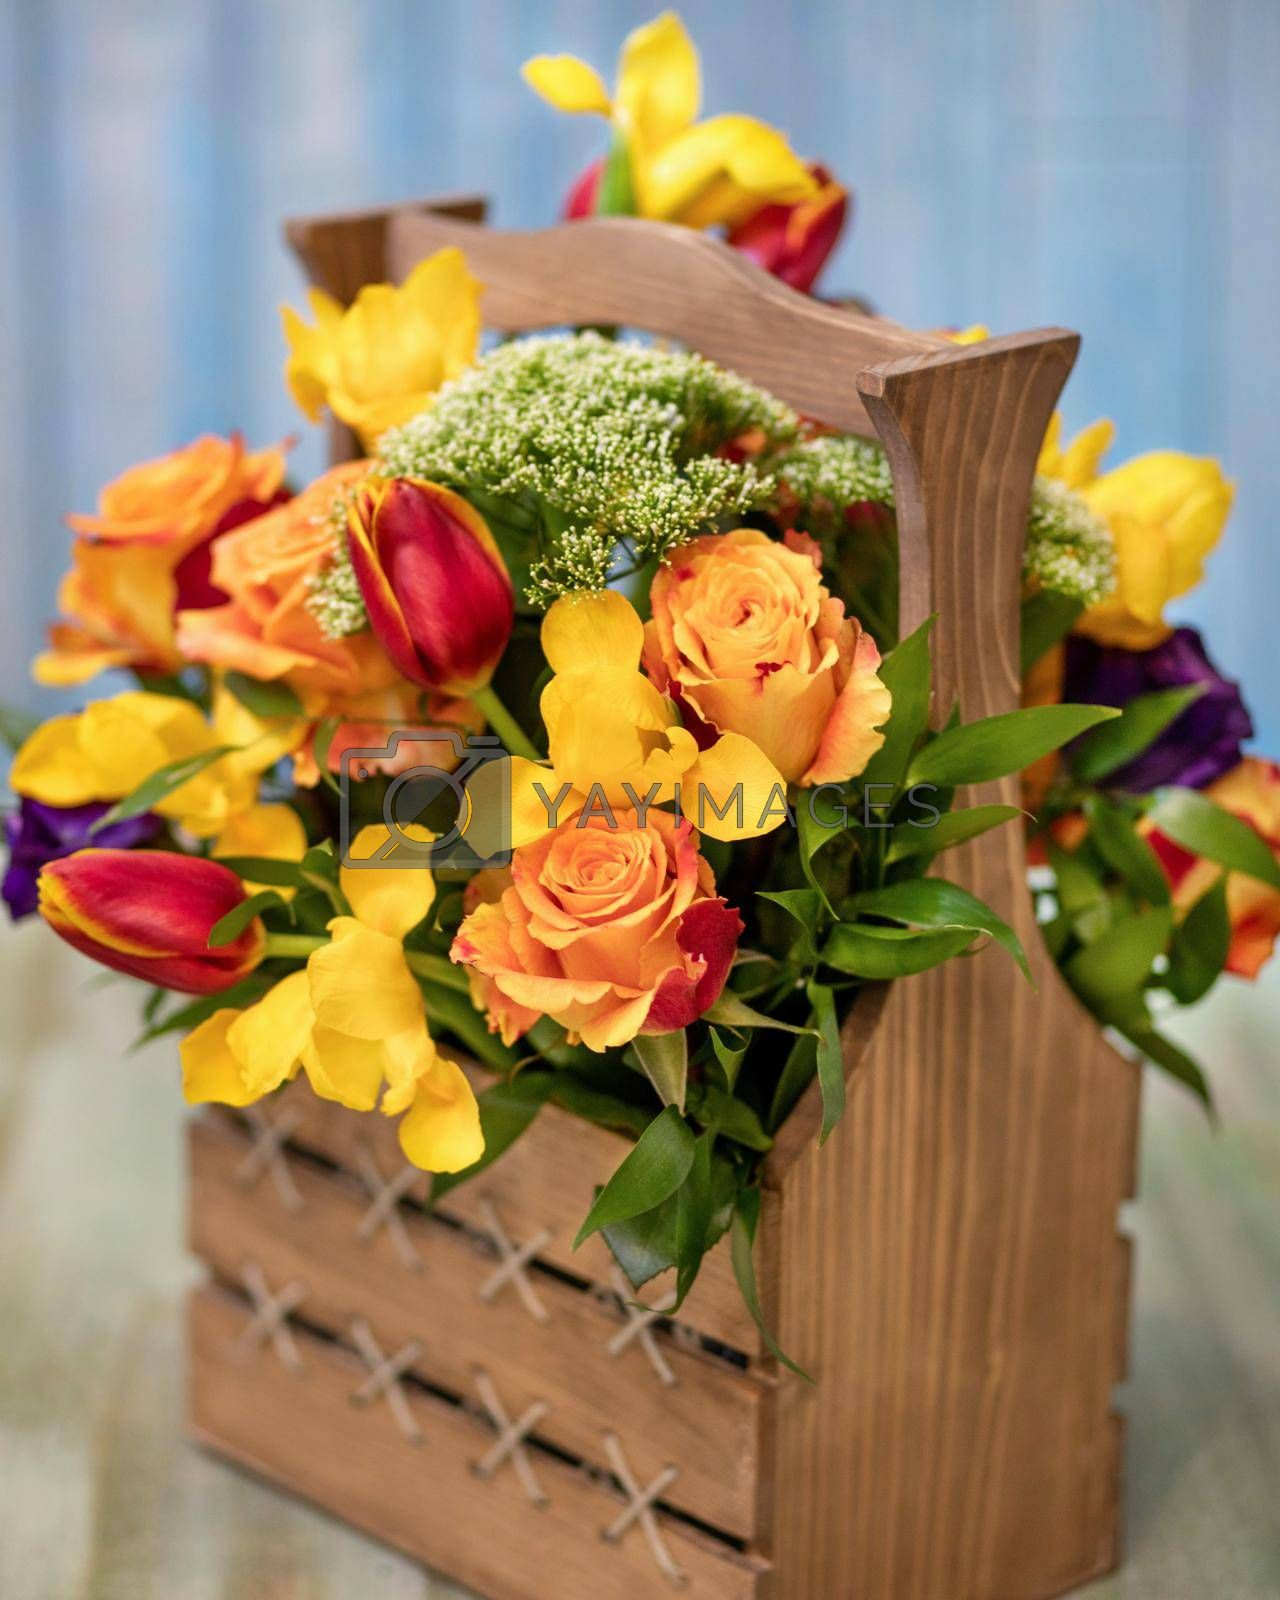 Colorful flower bouquet in the wood box with blue background